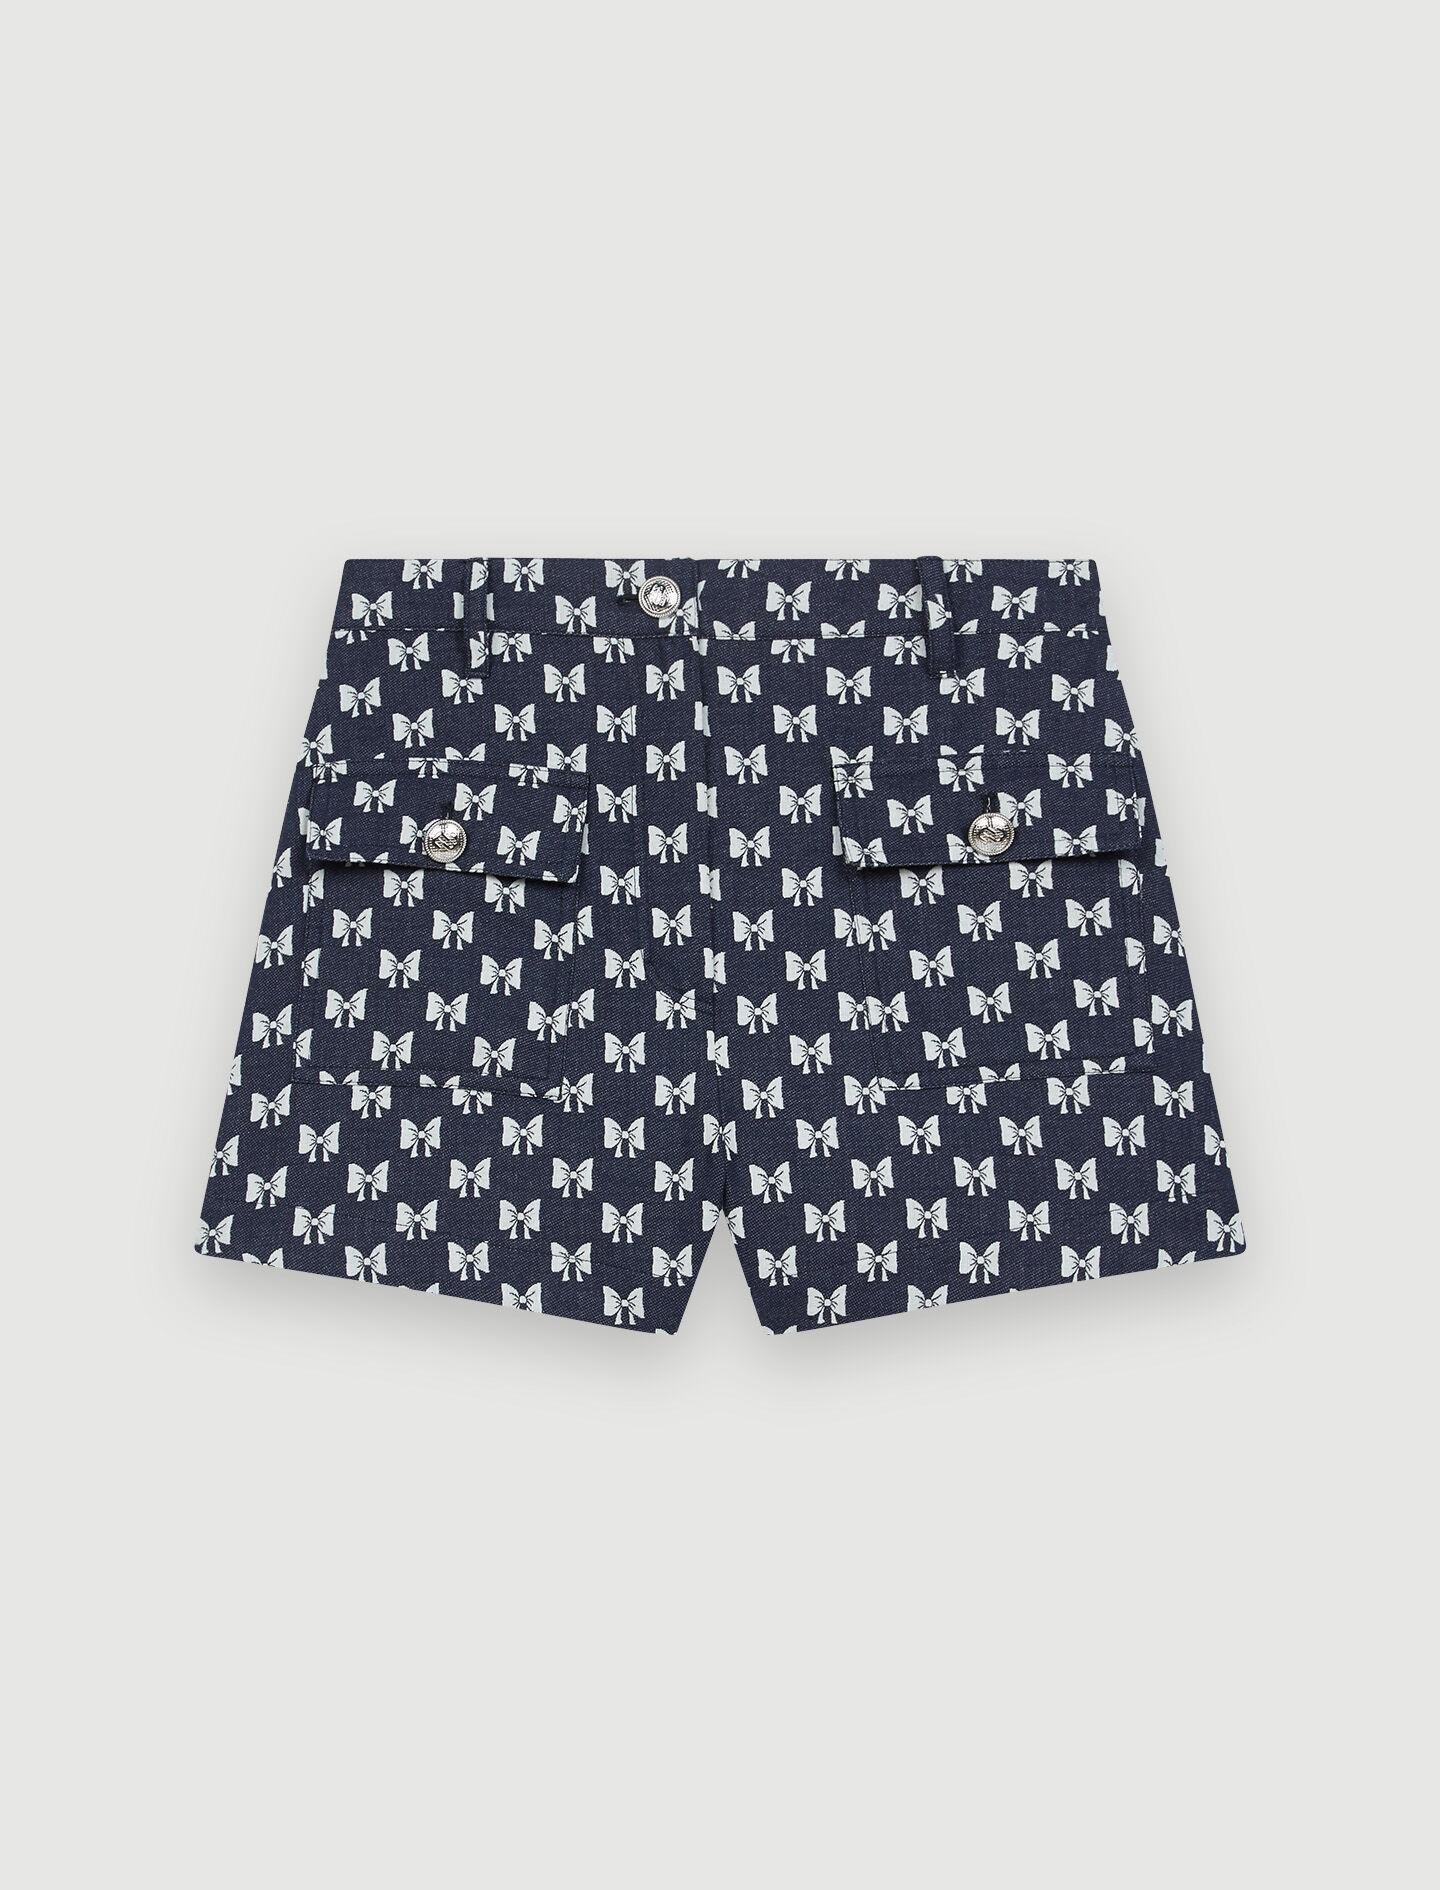 JACQUARD SHORTS WITH BOW PATTERN 4